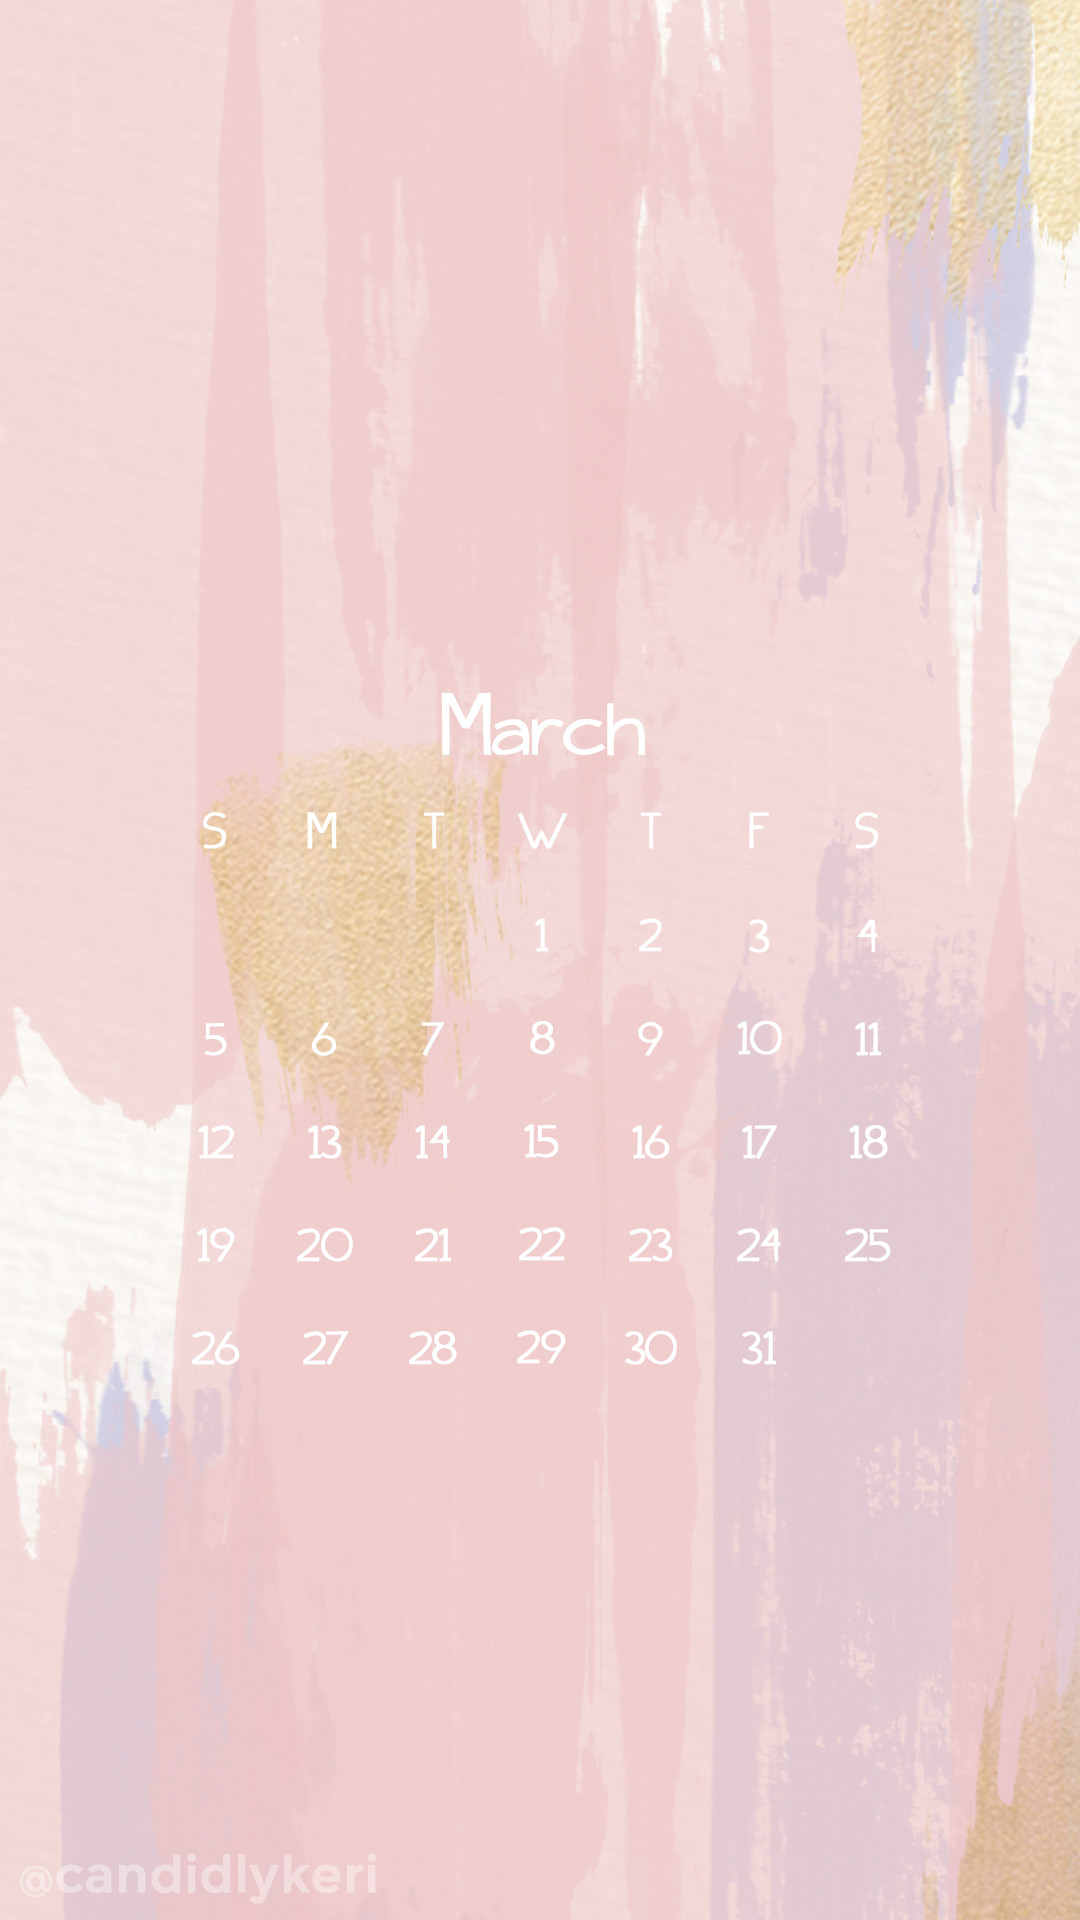 Pink stripes paint with blue, lavender and gold March calendar 2017  wallpaper you can download